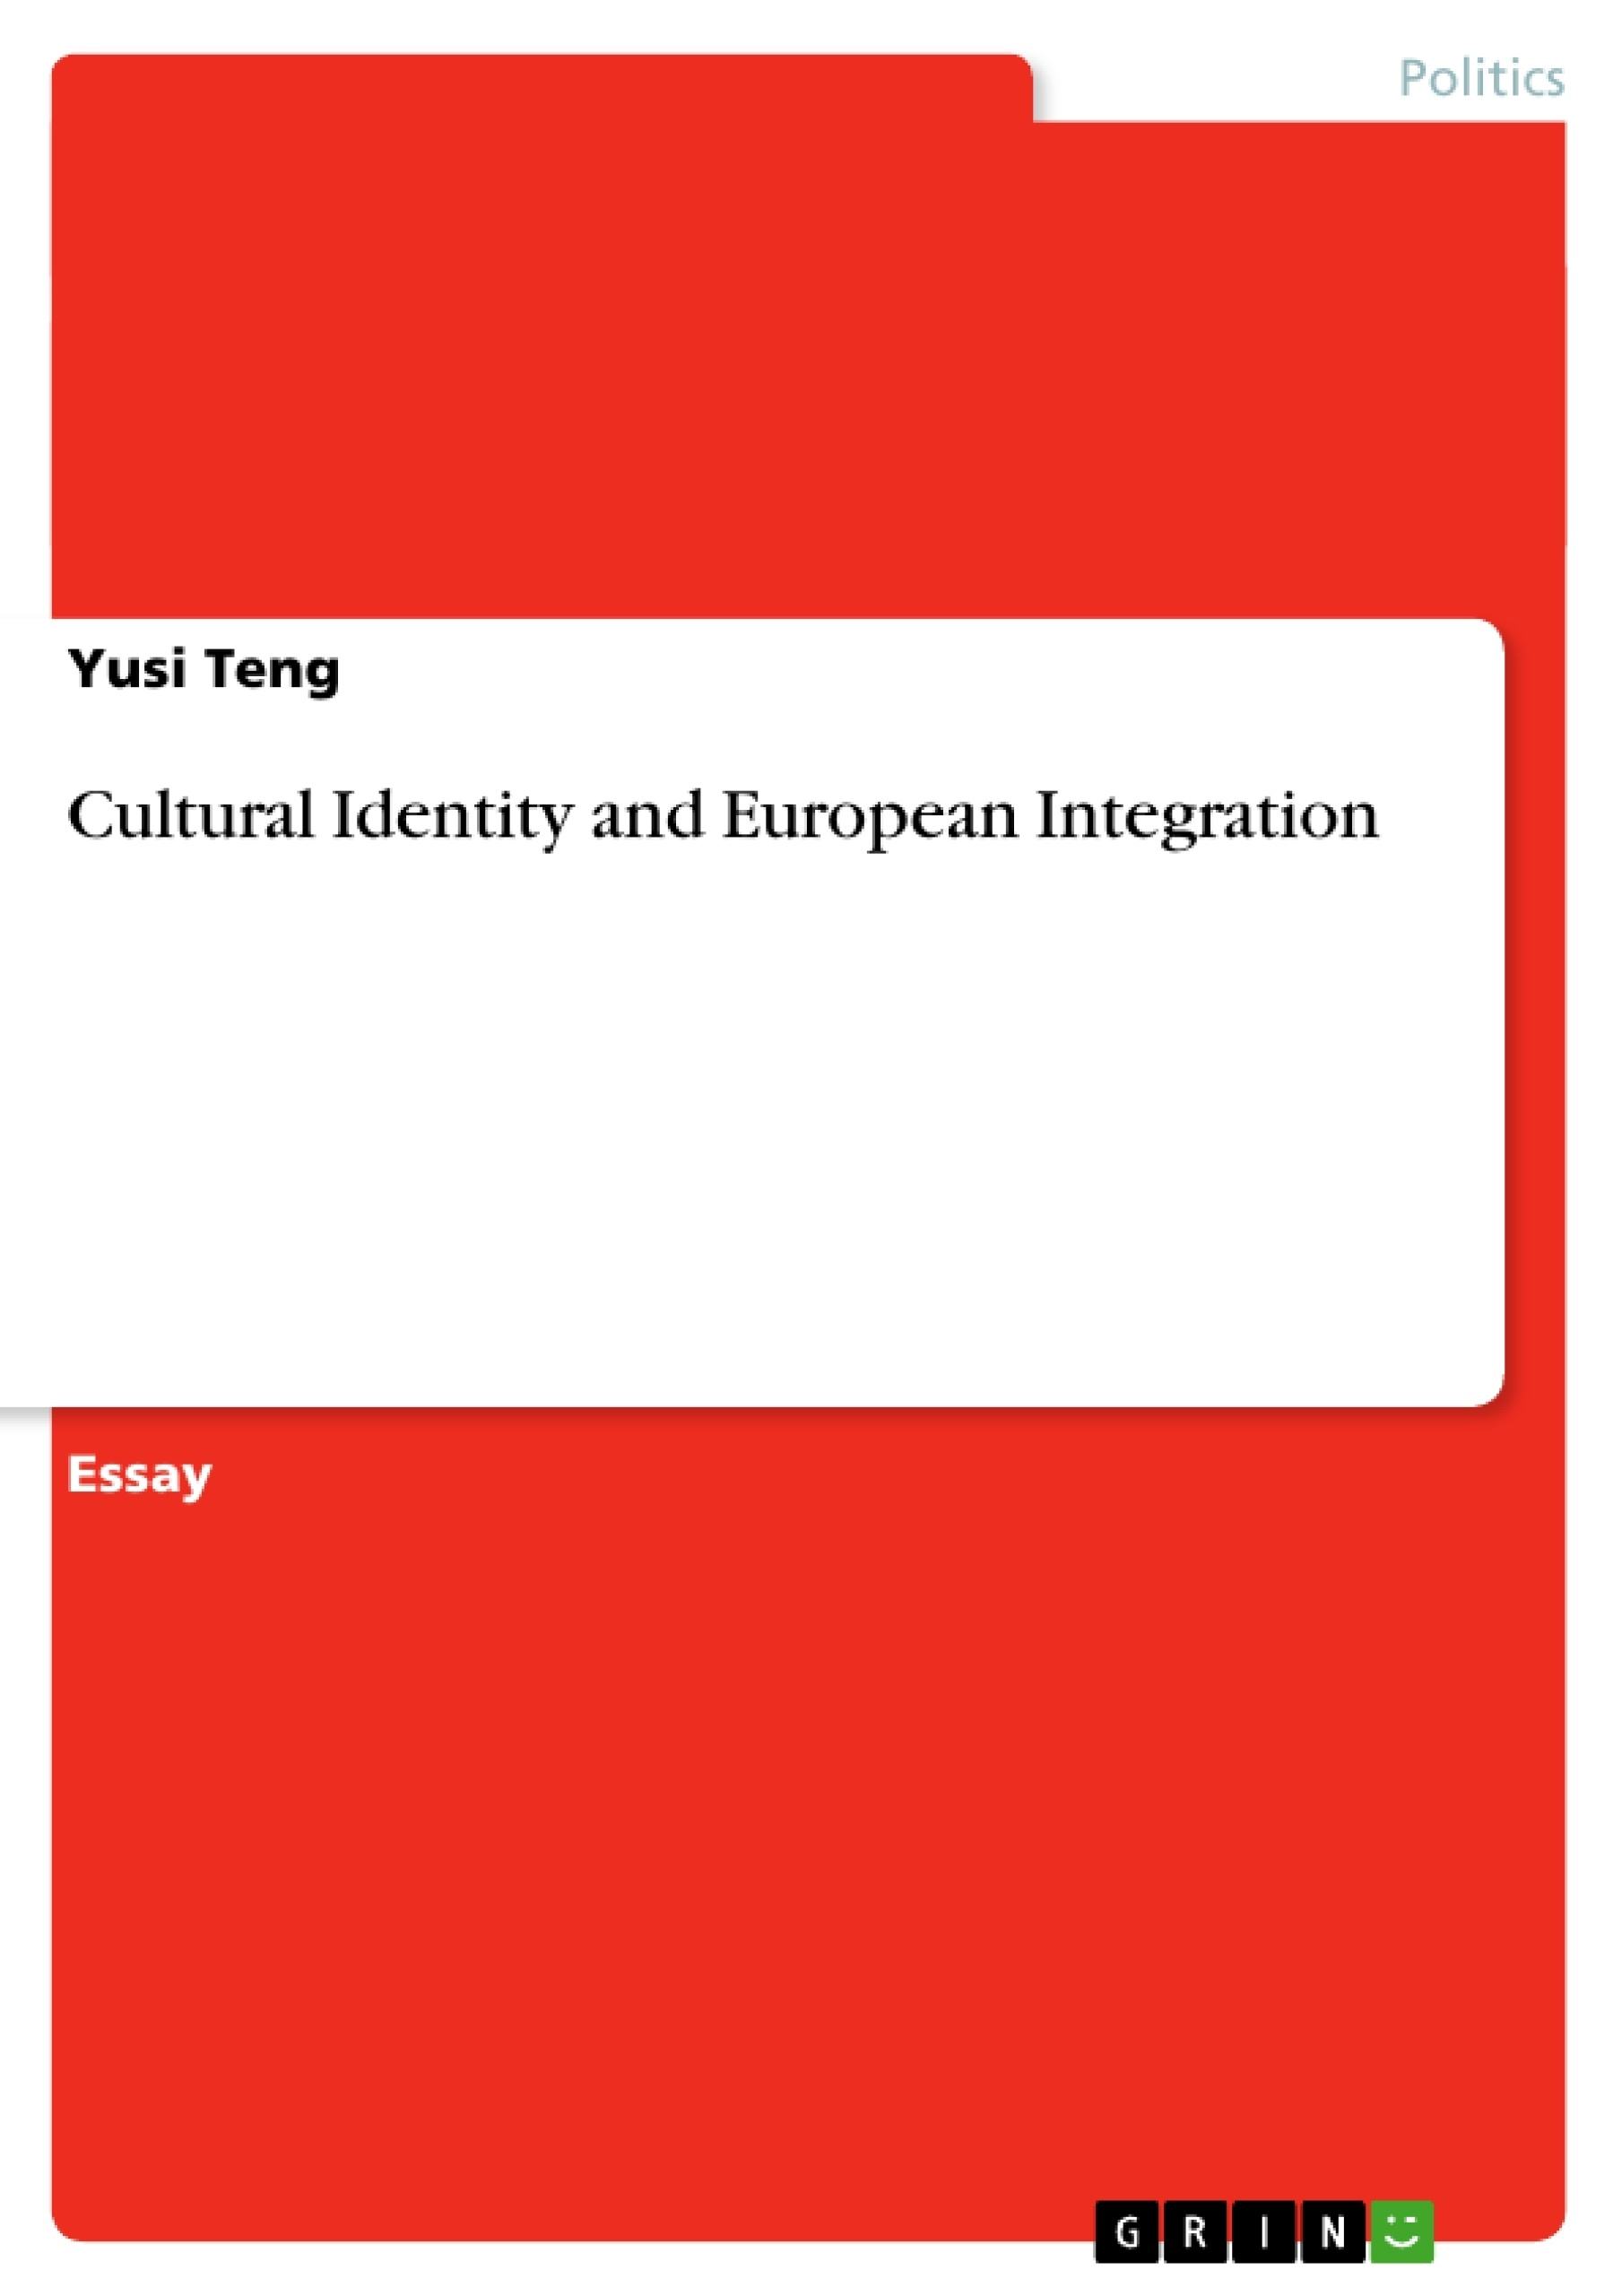 cultural identity and european integration publish your master s cultural identity and european integration publish your master s thesis bachelor s thesis essay or term paper